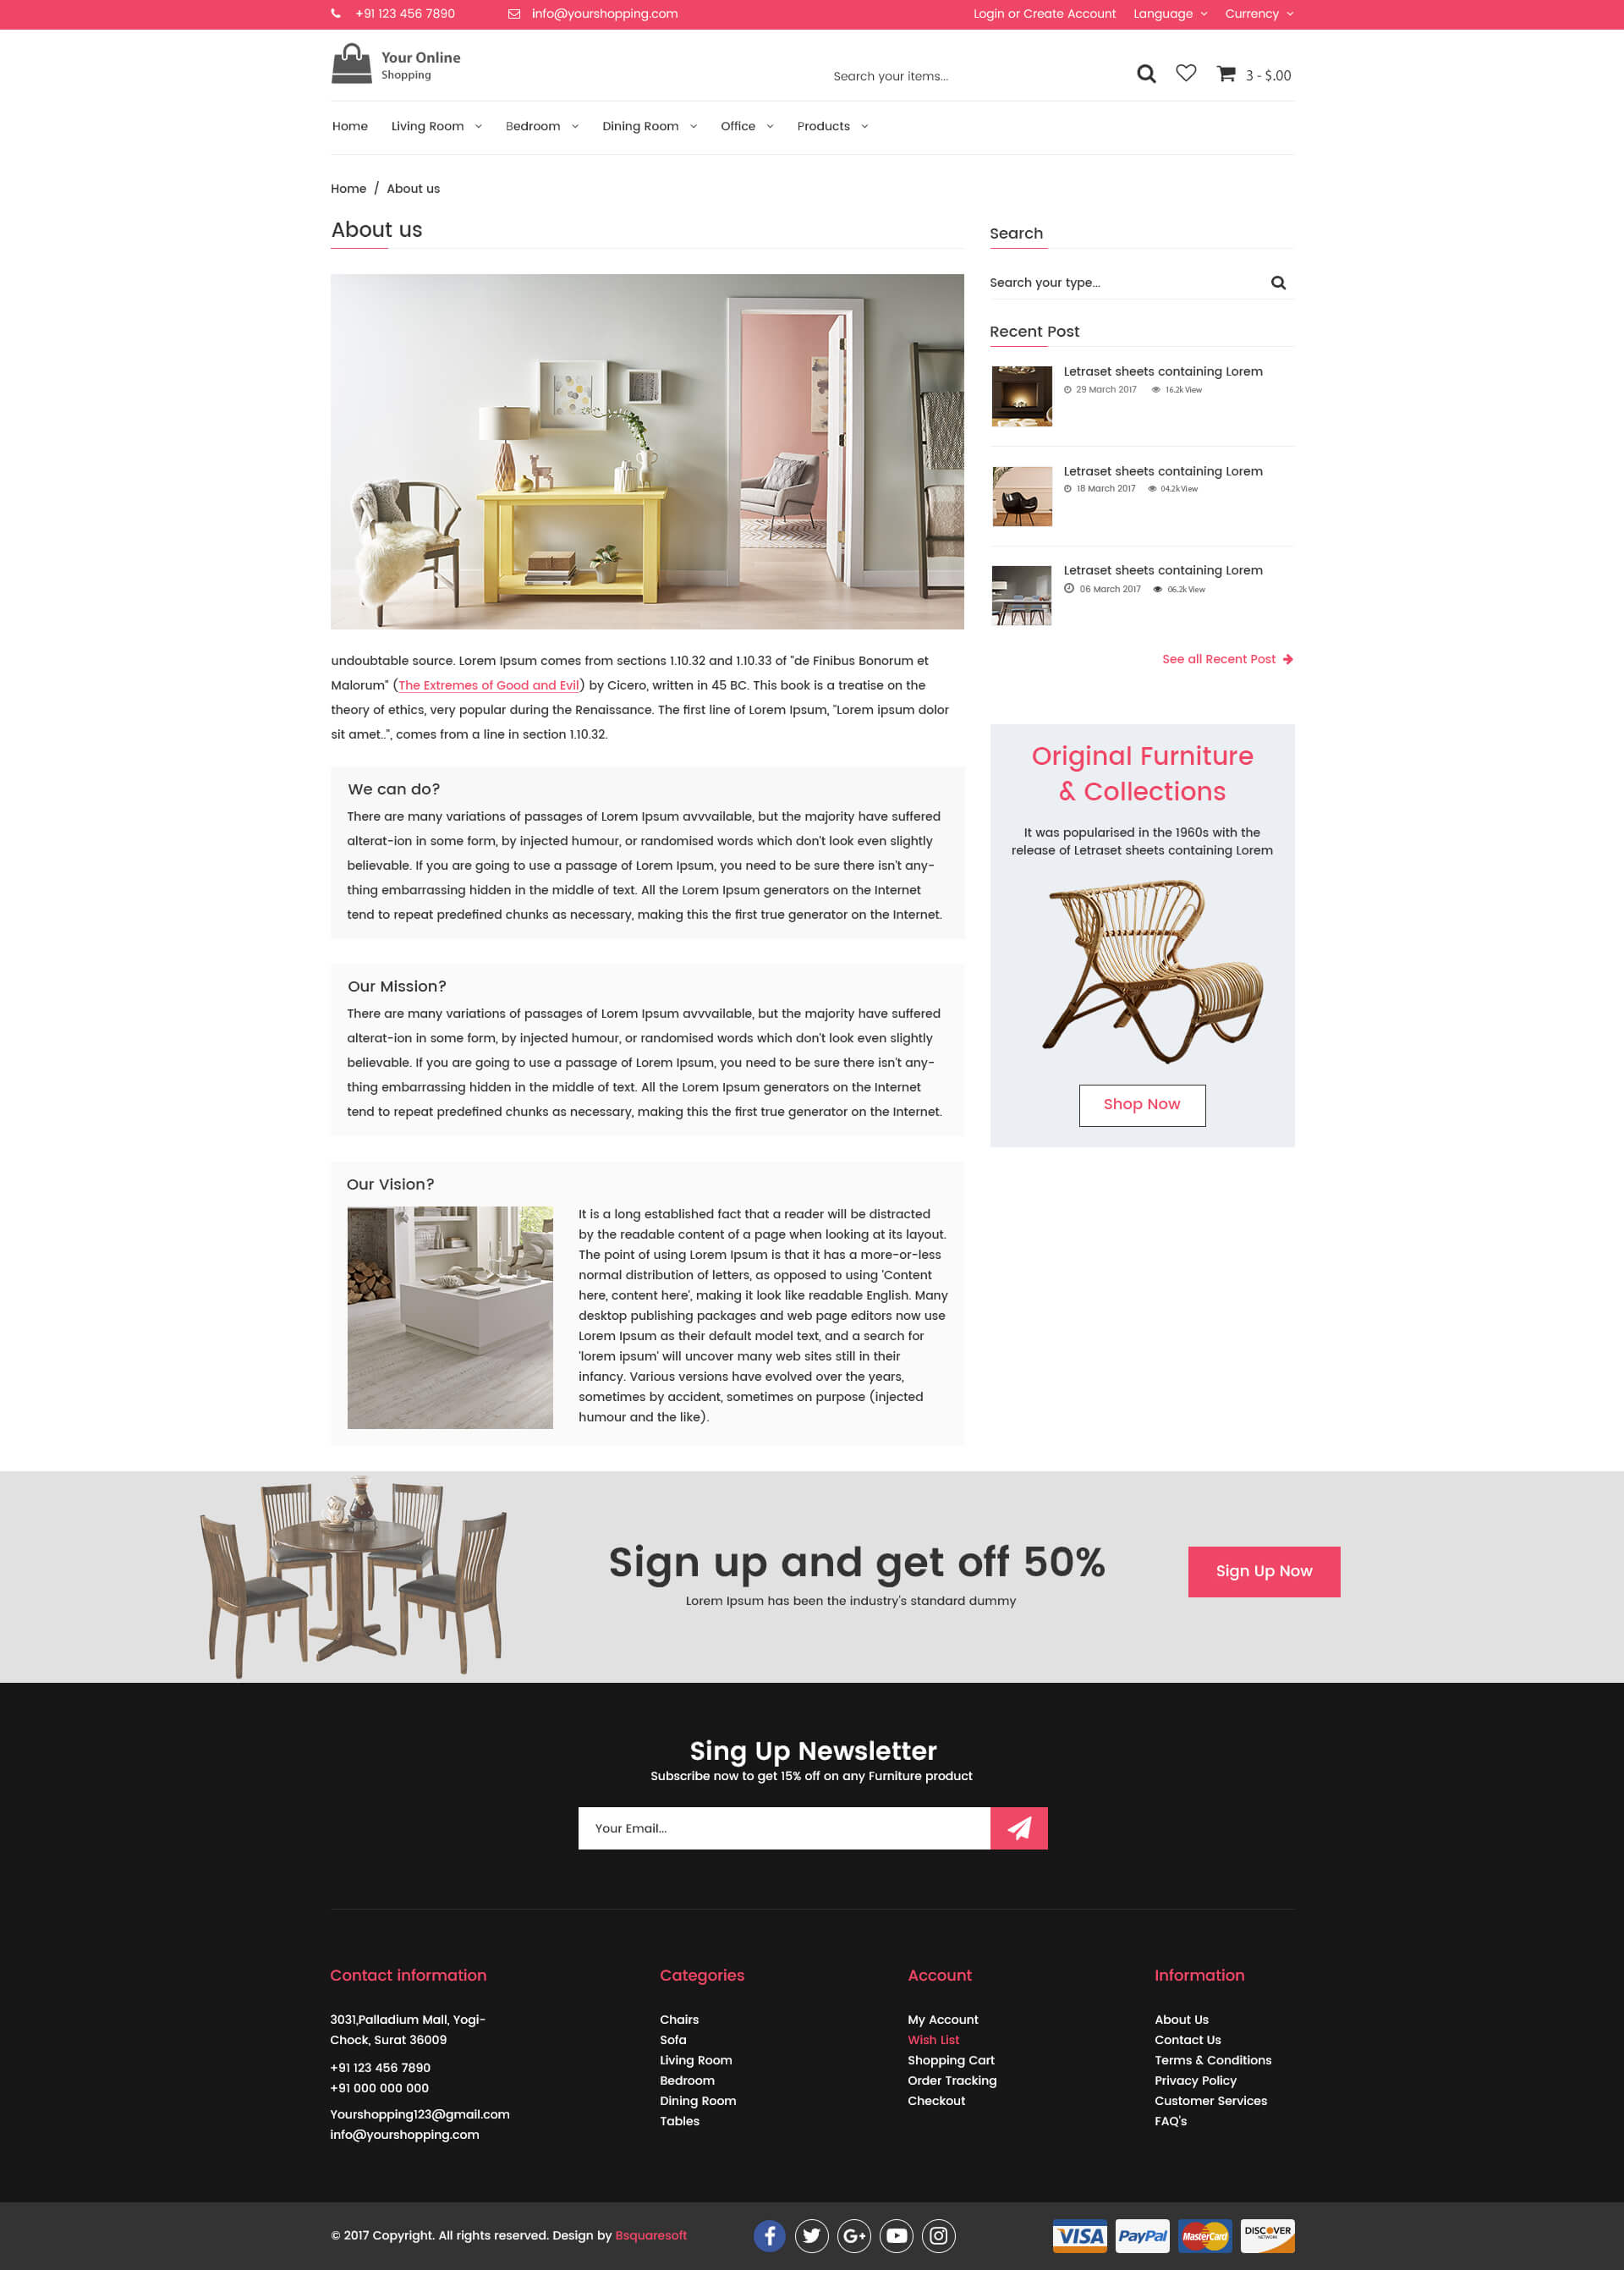 Online Shopping Ecommerce Psd Template By Bsquaresoft Themeforest